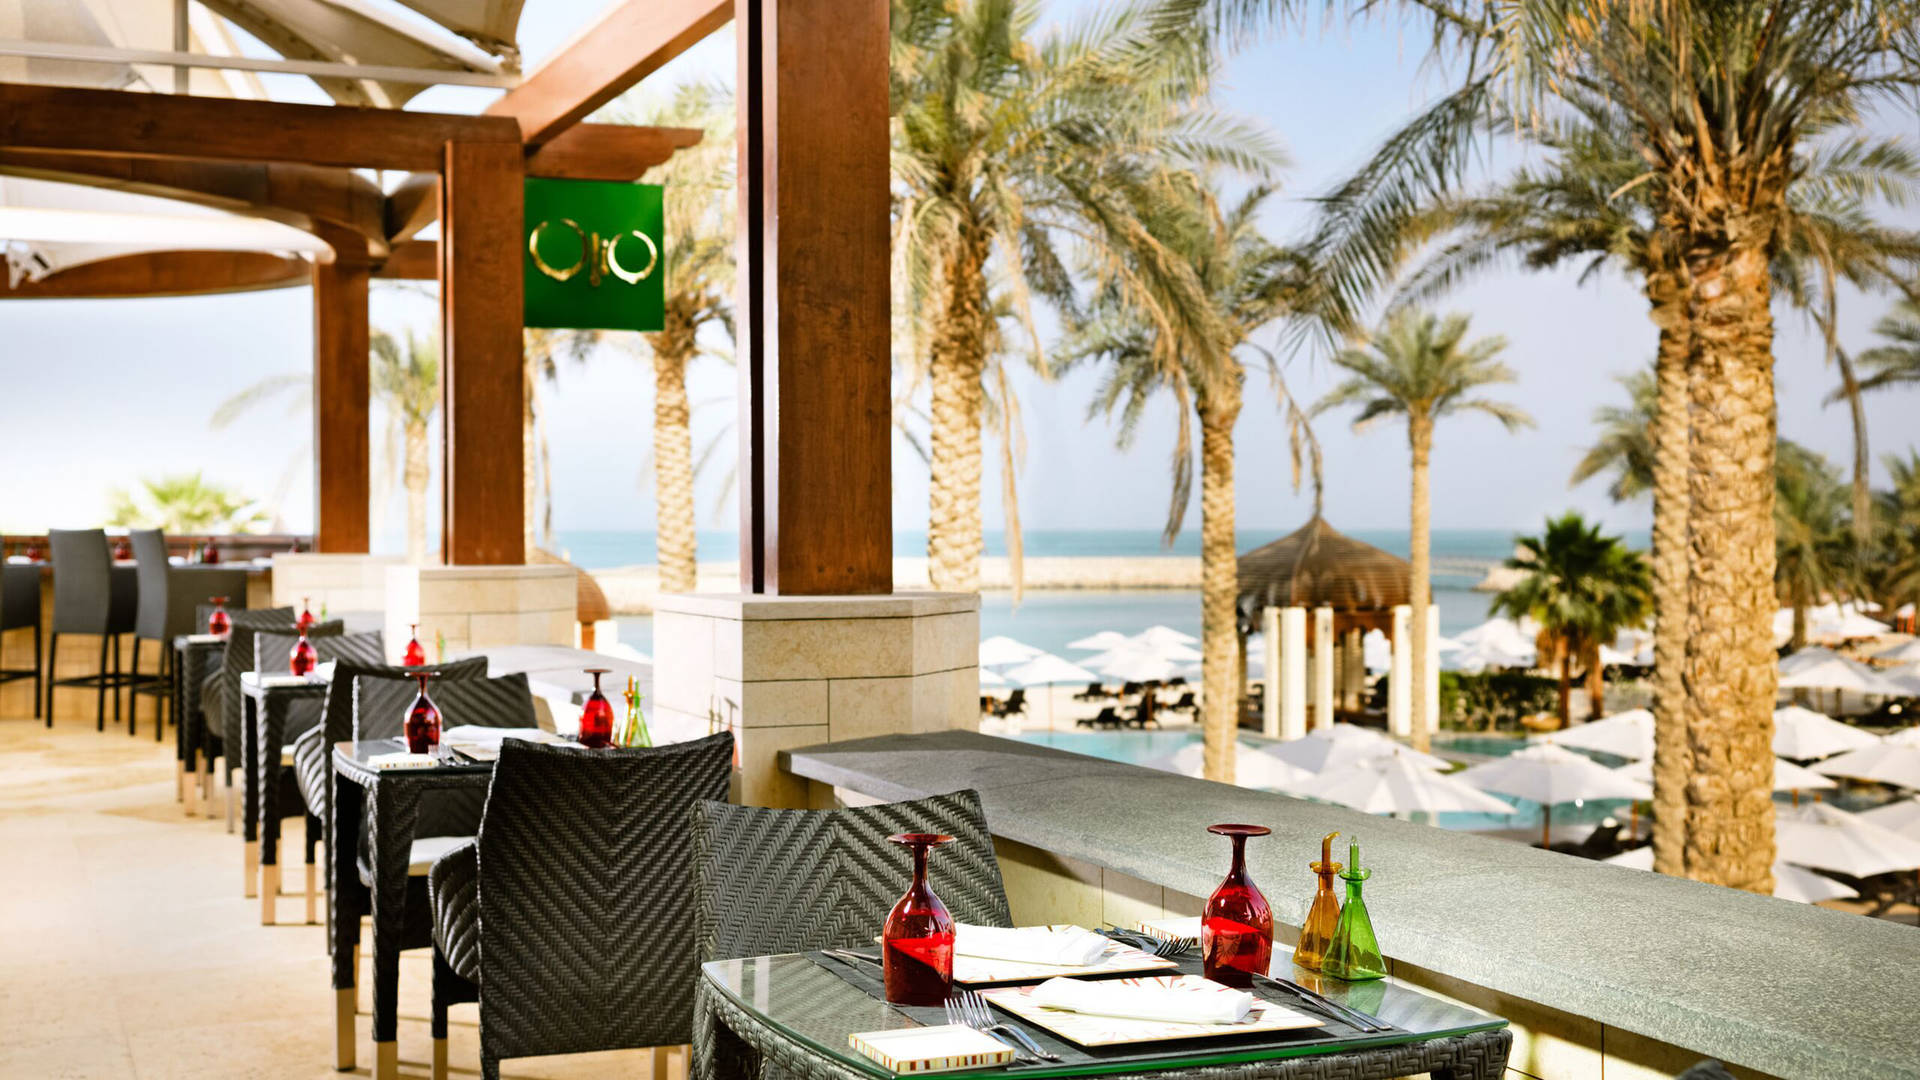 Dining outside at Jumeirah Messilah Beach Hotel